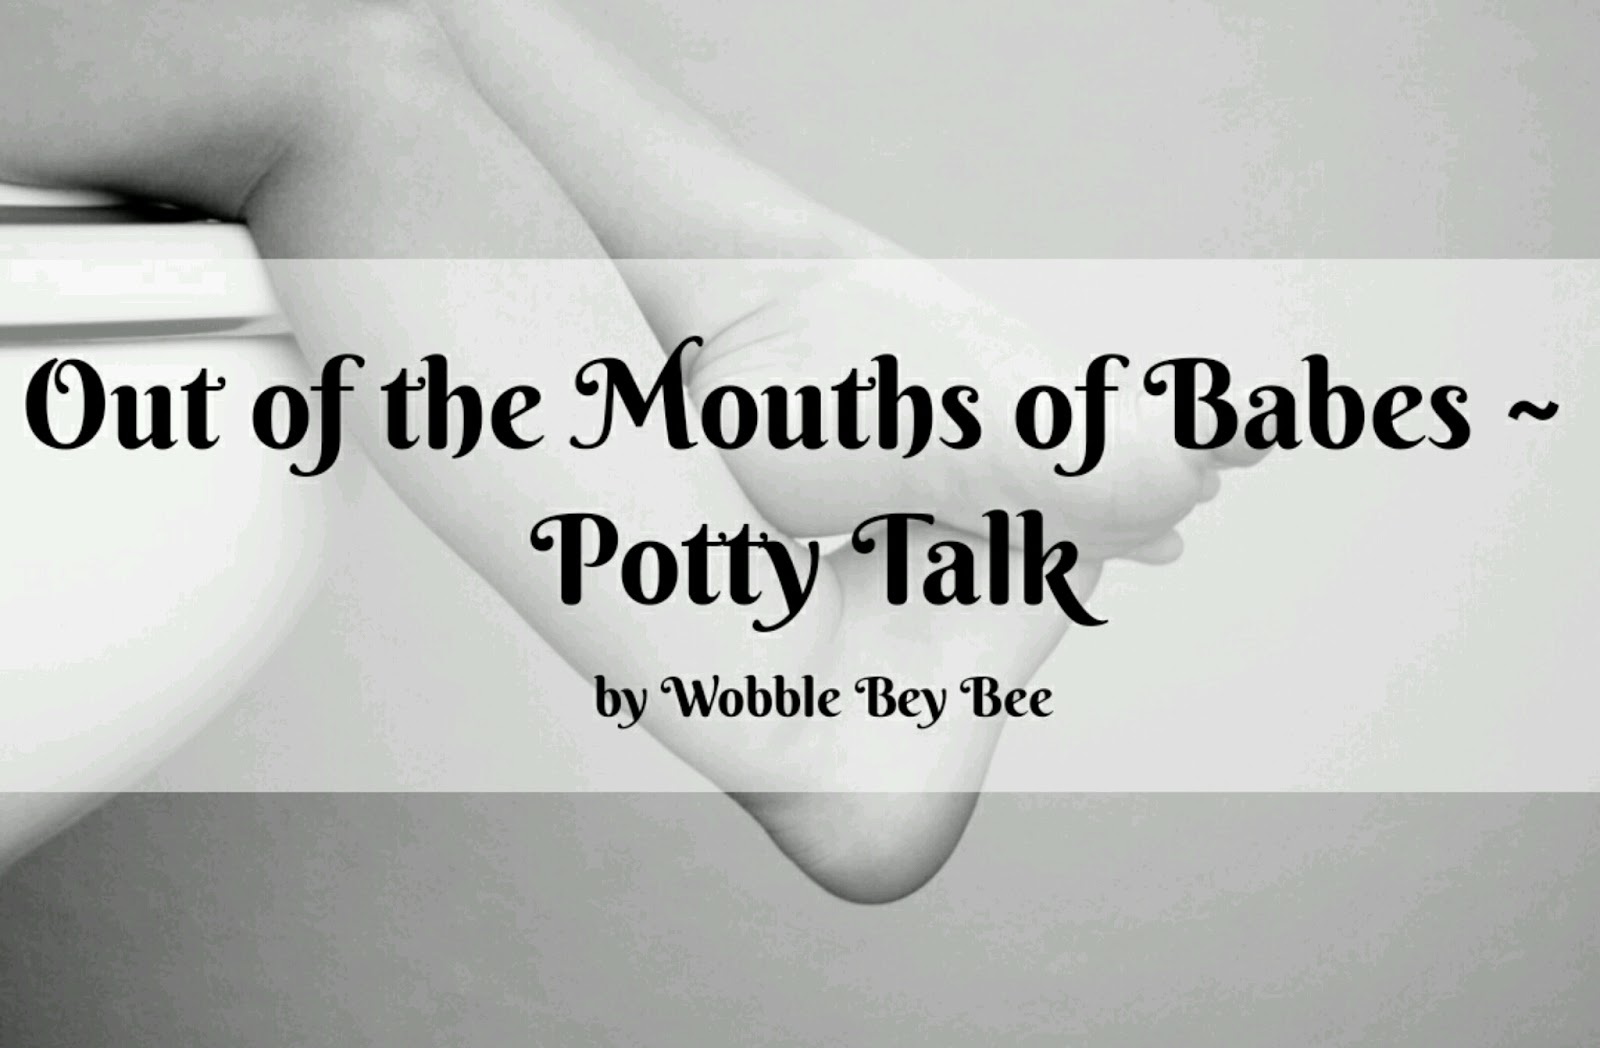 Out of the Mouths of Babes ~ Potty Talk